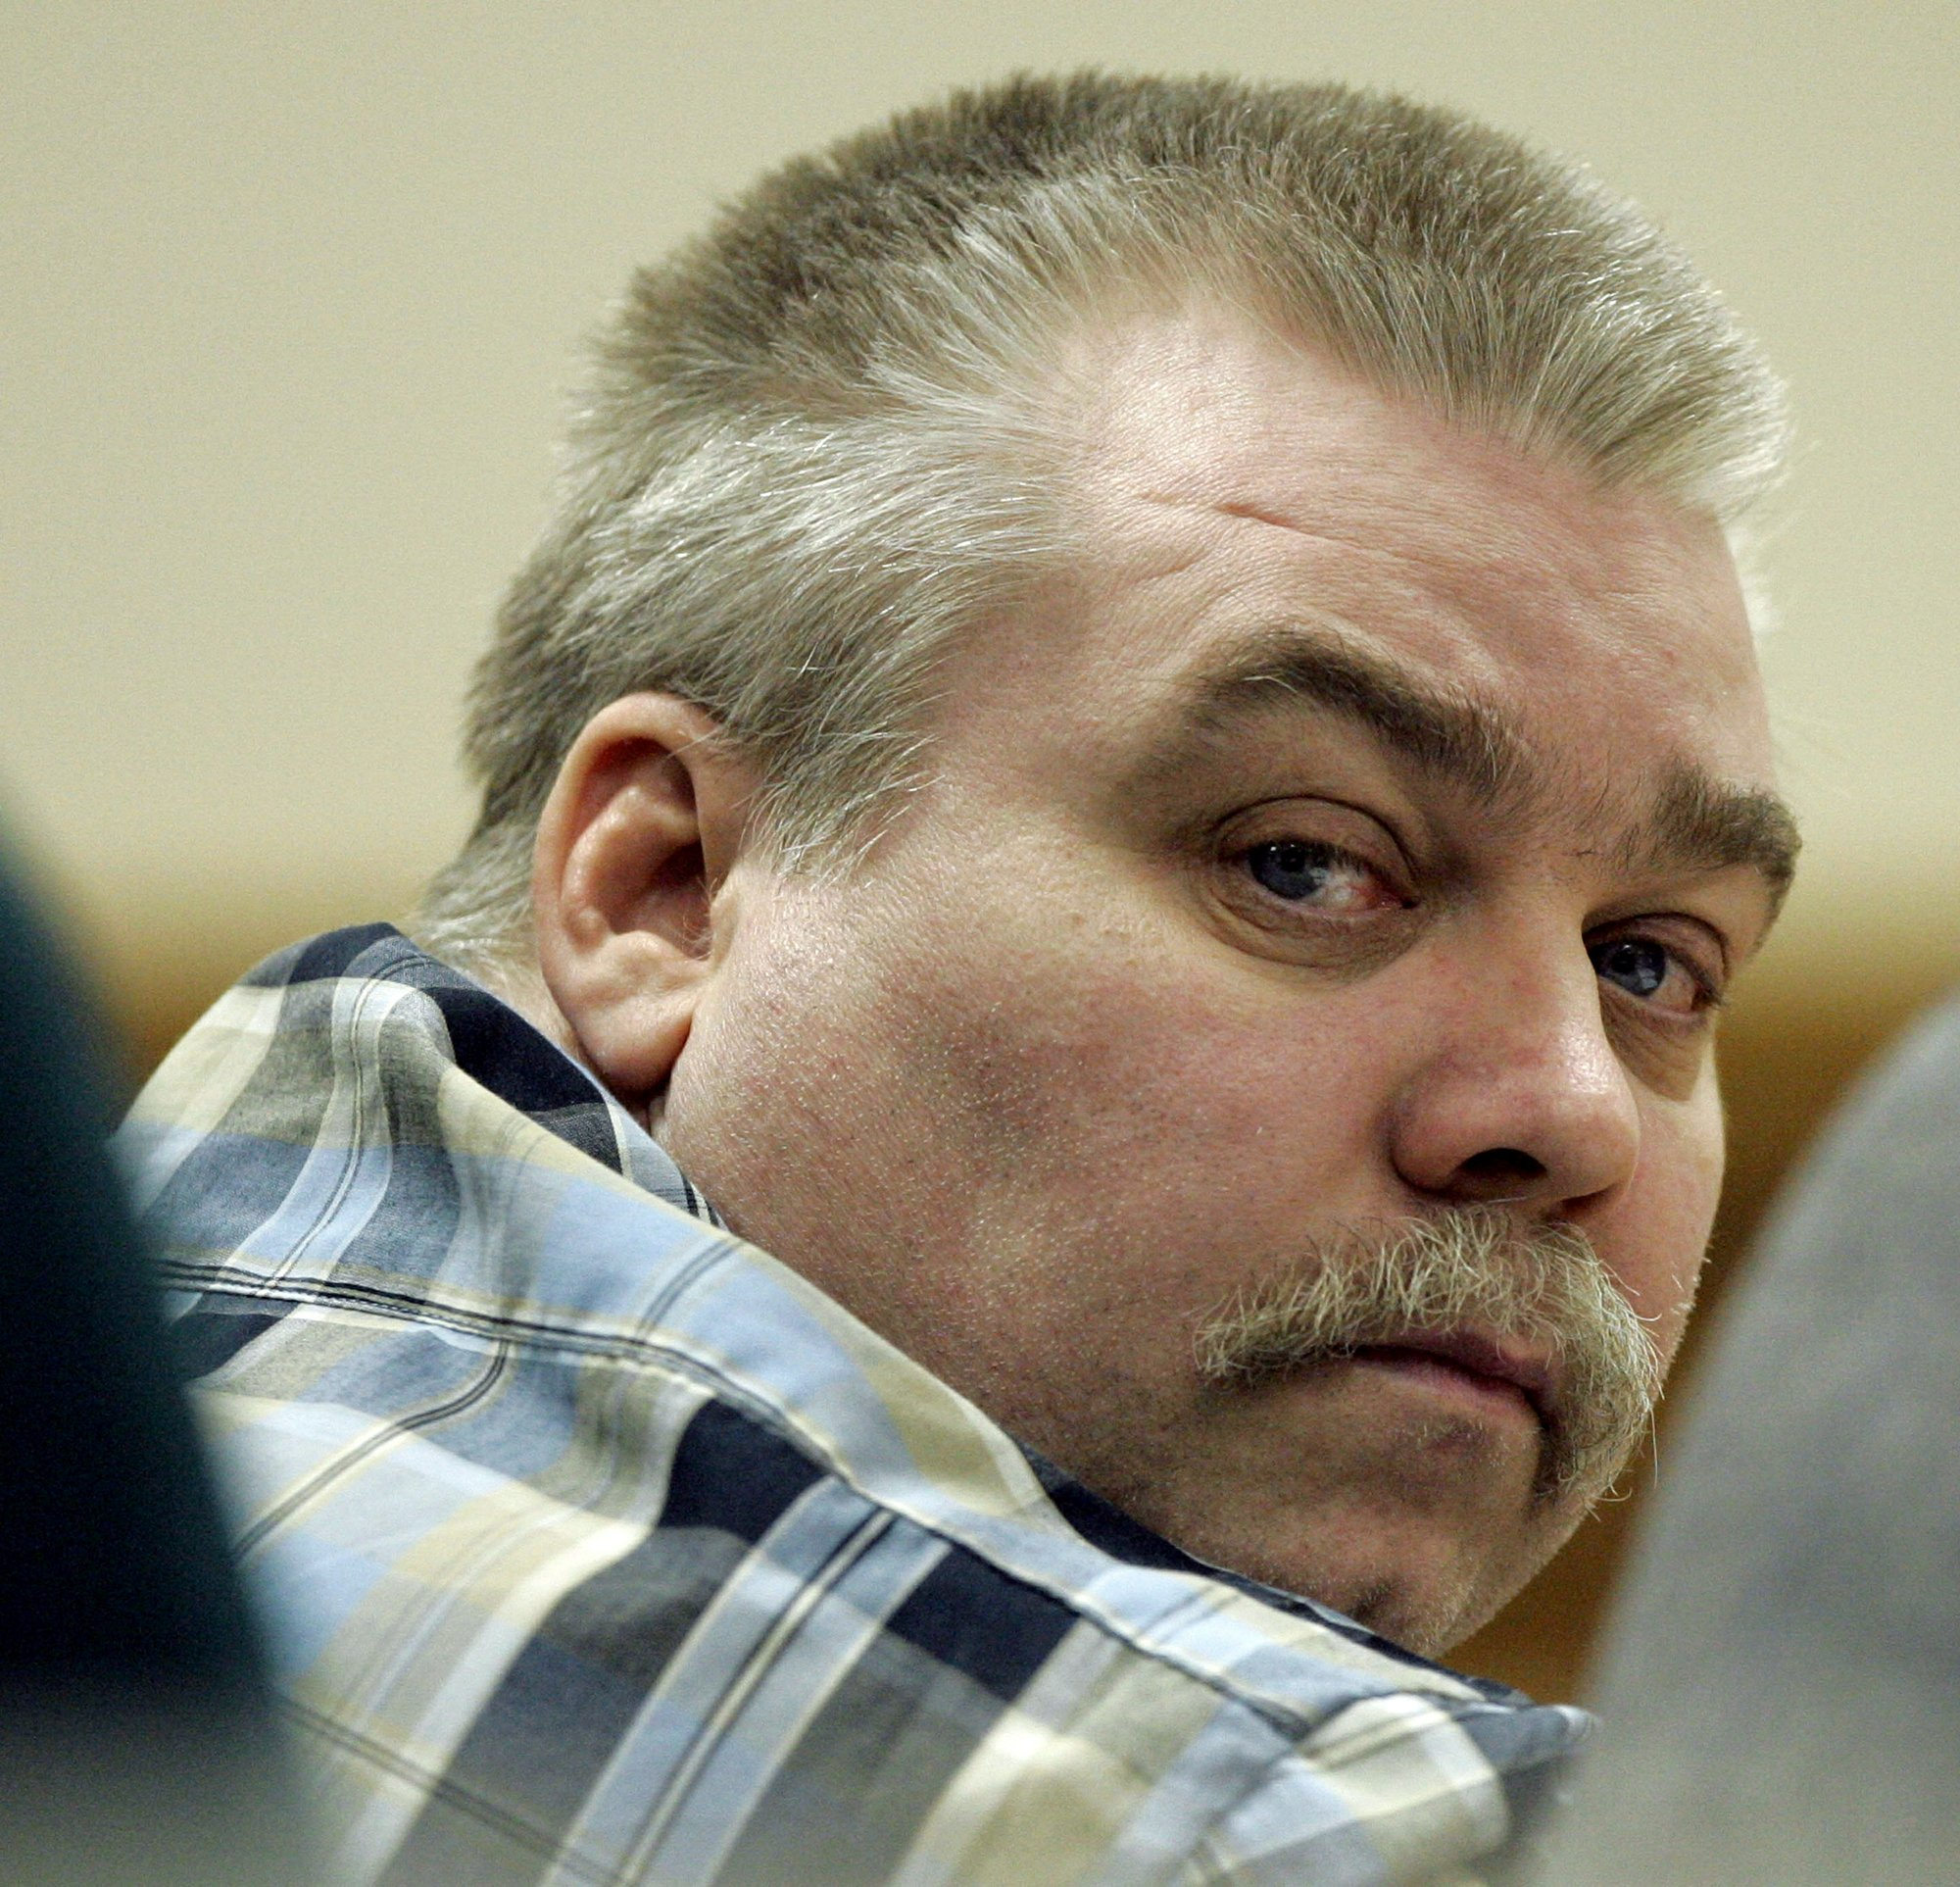 Judge rejects bid for new trial in 'Making a Murderer' case